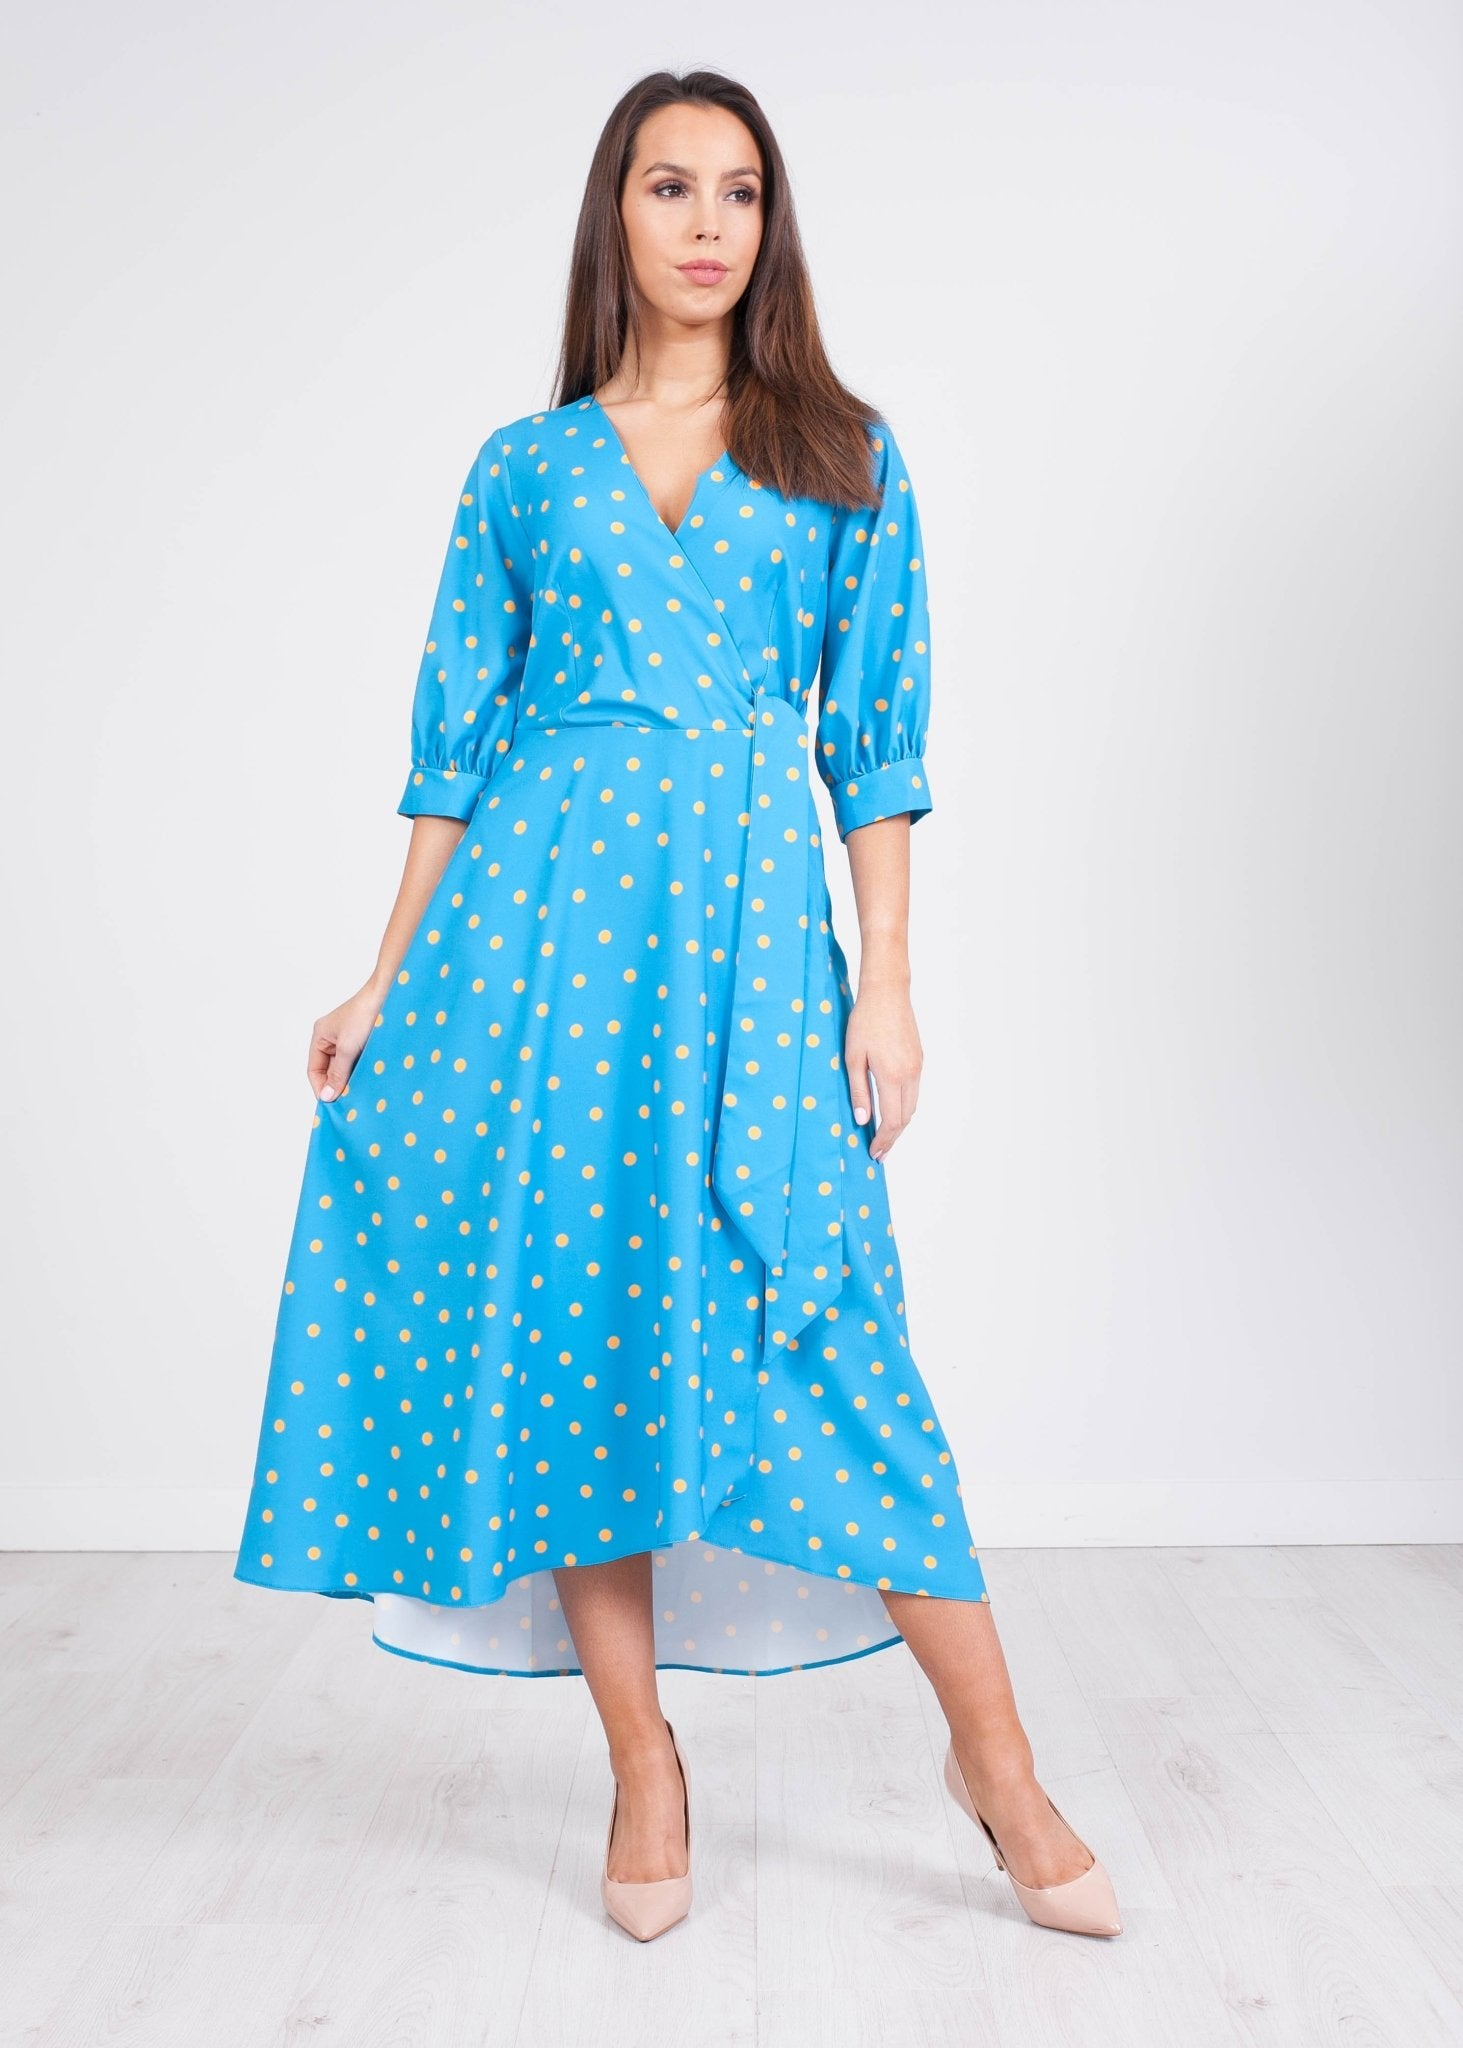 Cara Blue Polka Dot Wrap Dress - The Walk in Wardrobe